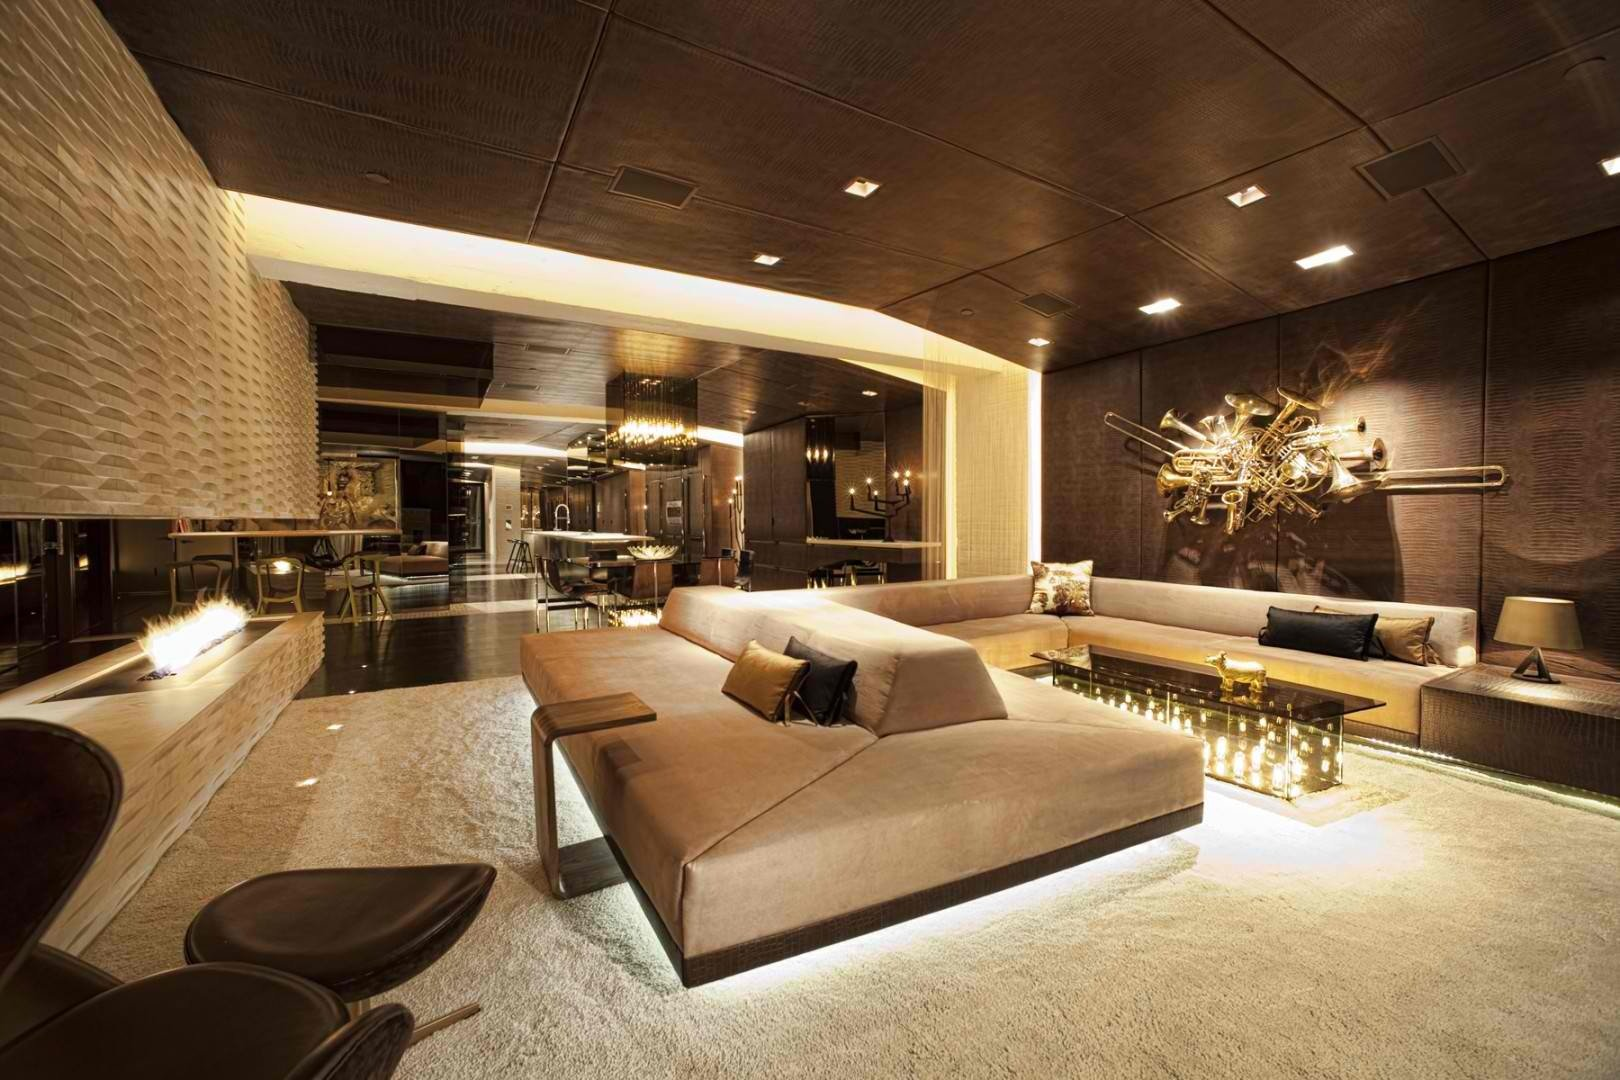 https://0201.nccdn.net/4_2/000/000/05a/a3f/top-interior-architect-luxury-modern-interior-design-skylab-architecture-1620x1080.jpg